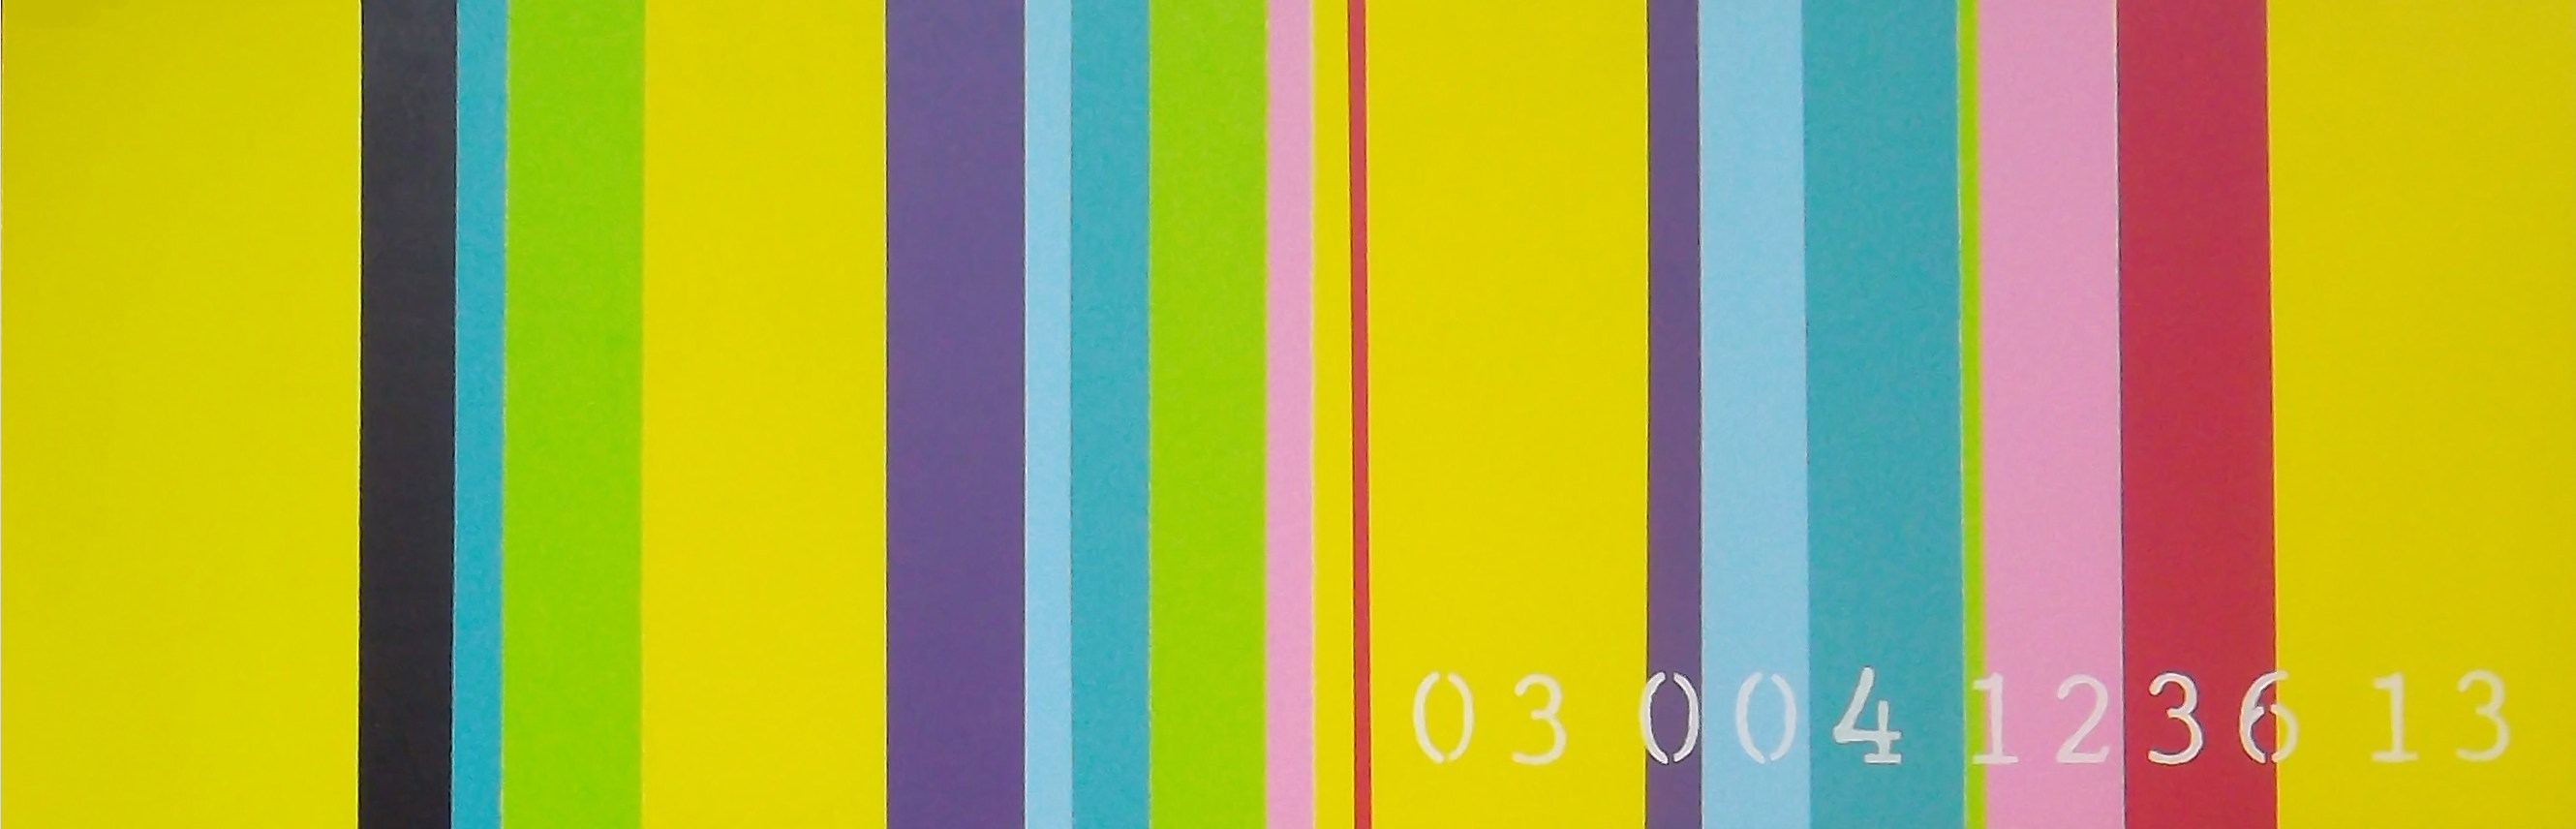 commodity of colour 03 004 1236 13 / 12″ x 36″ – collected works of ...